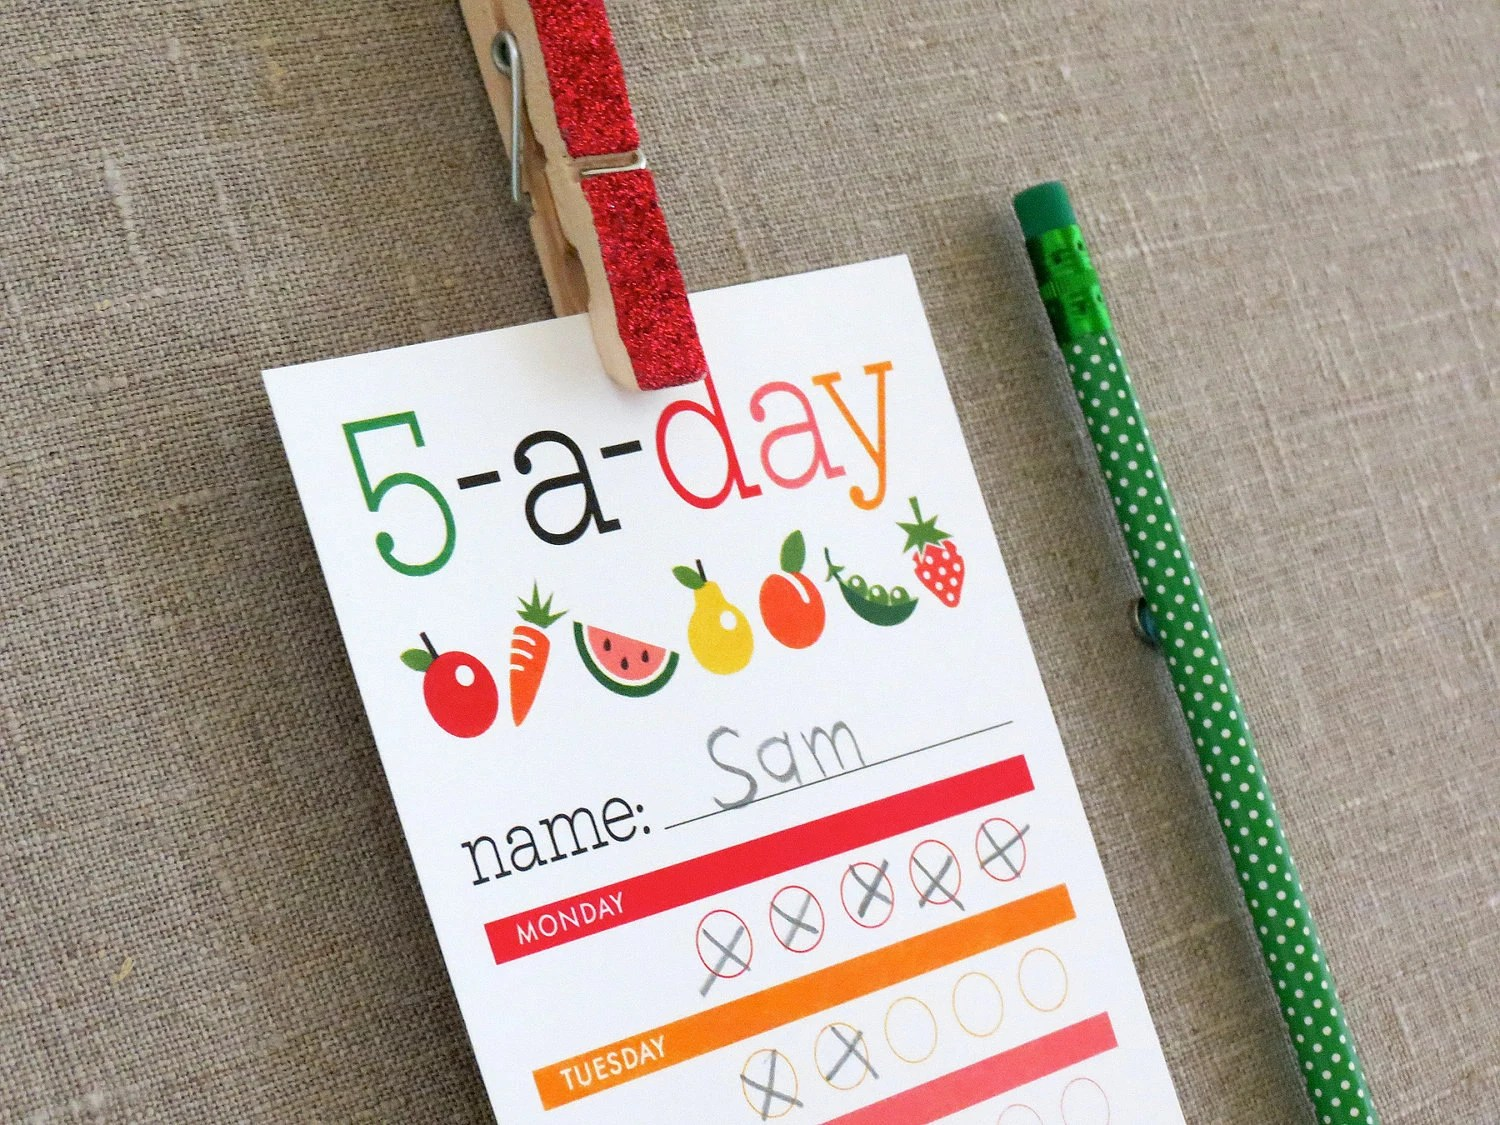 Healthy Eating Chart For Kids 5 A Day Printable